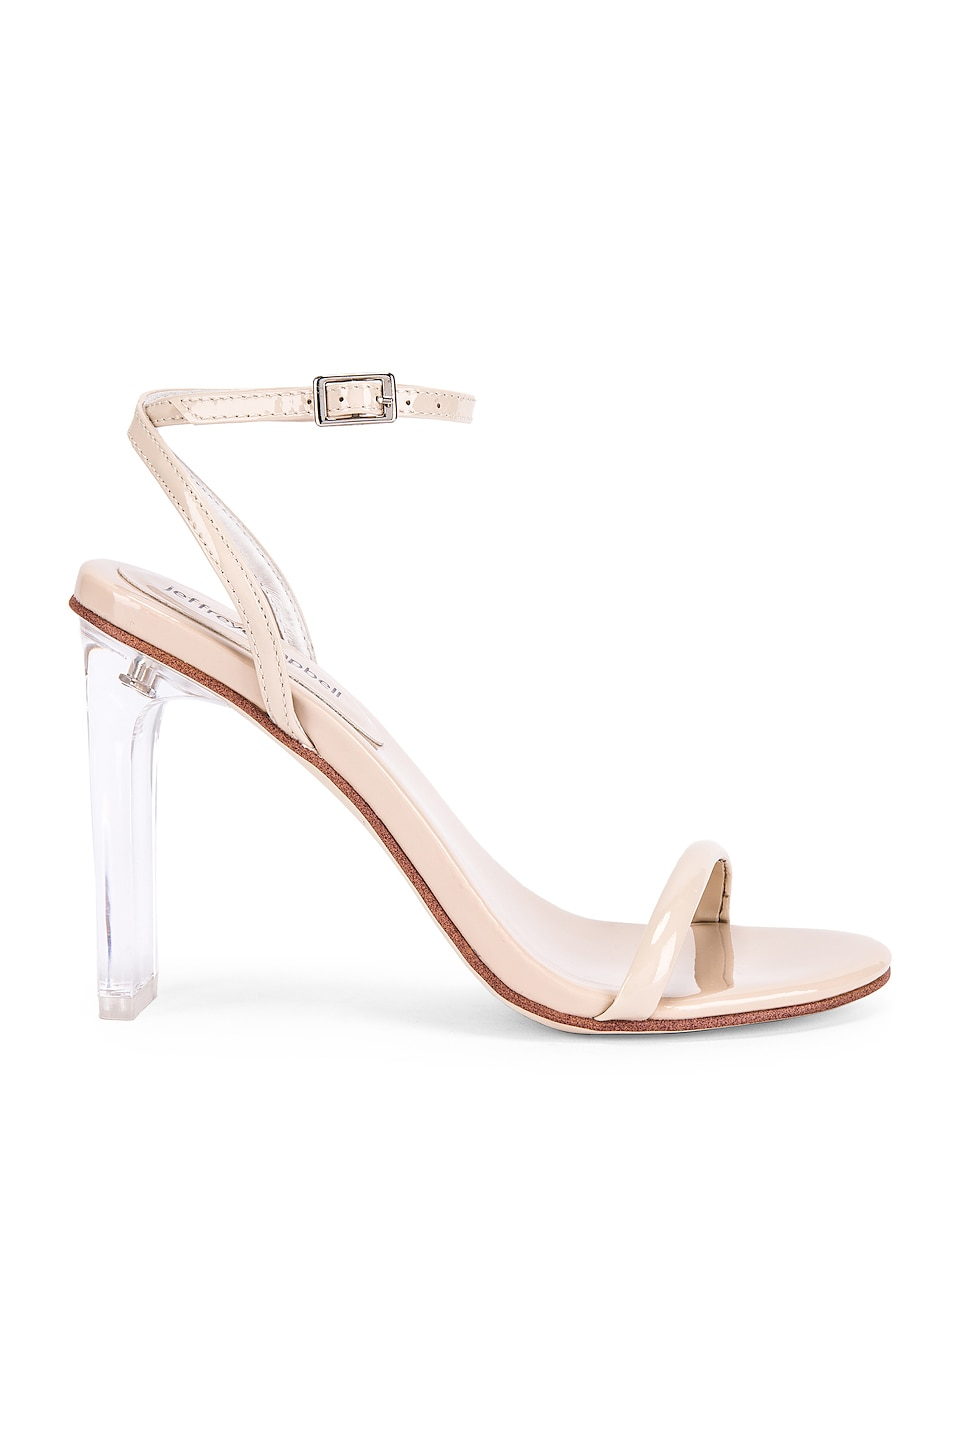 Jeffrey Campbell Vaccine Sandal in Nude Patent & Clear